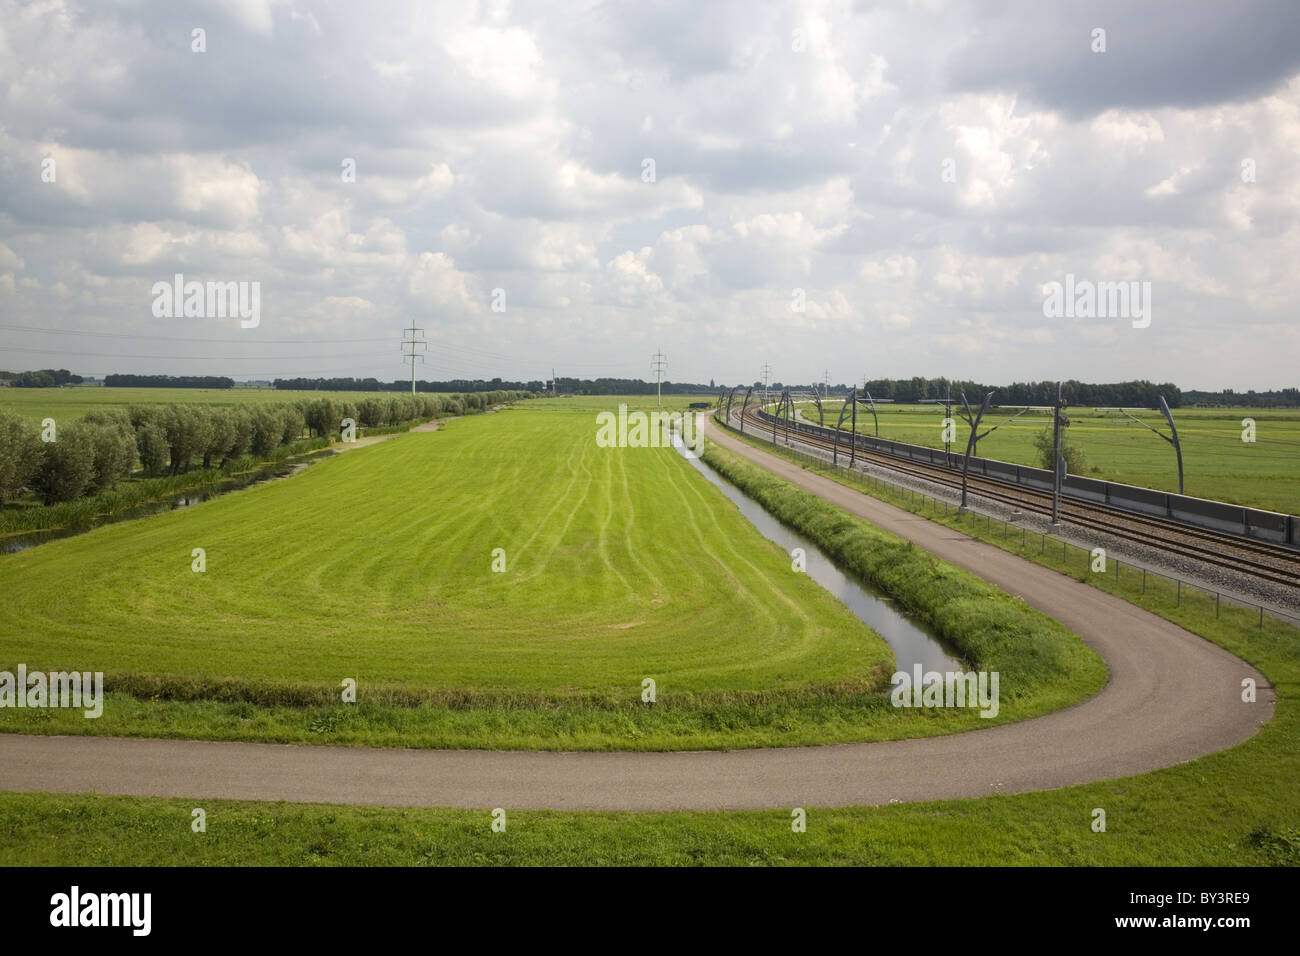 Lines in a Dutch polder, Hardinxveld-Giessendam, Zuid-Holland (South-Holland), Netherlands - Stock Image